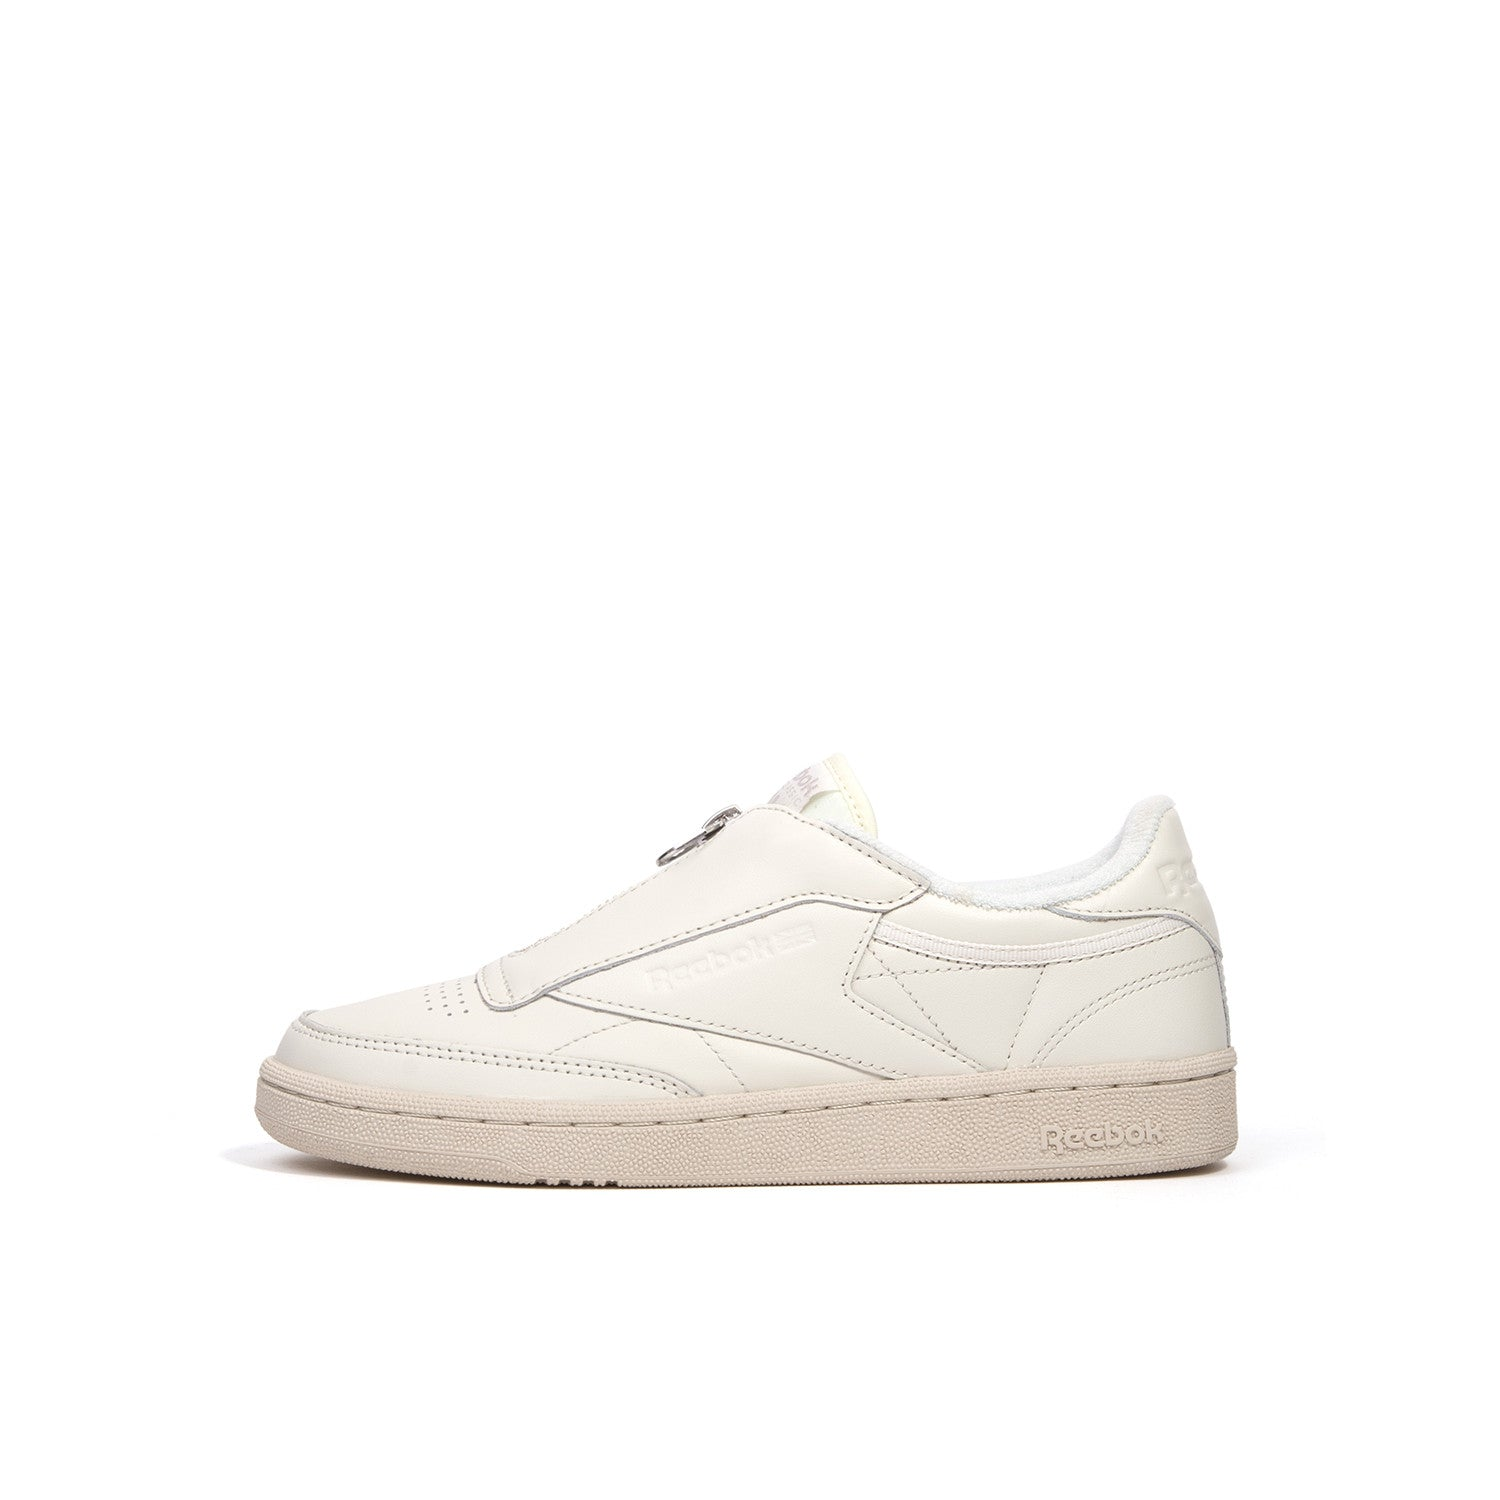 Reebok W Club C 85 Zip Chalk/Sandstone